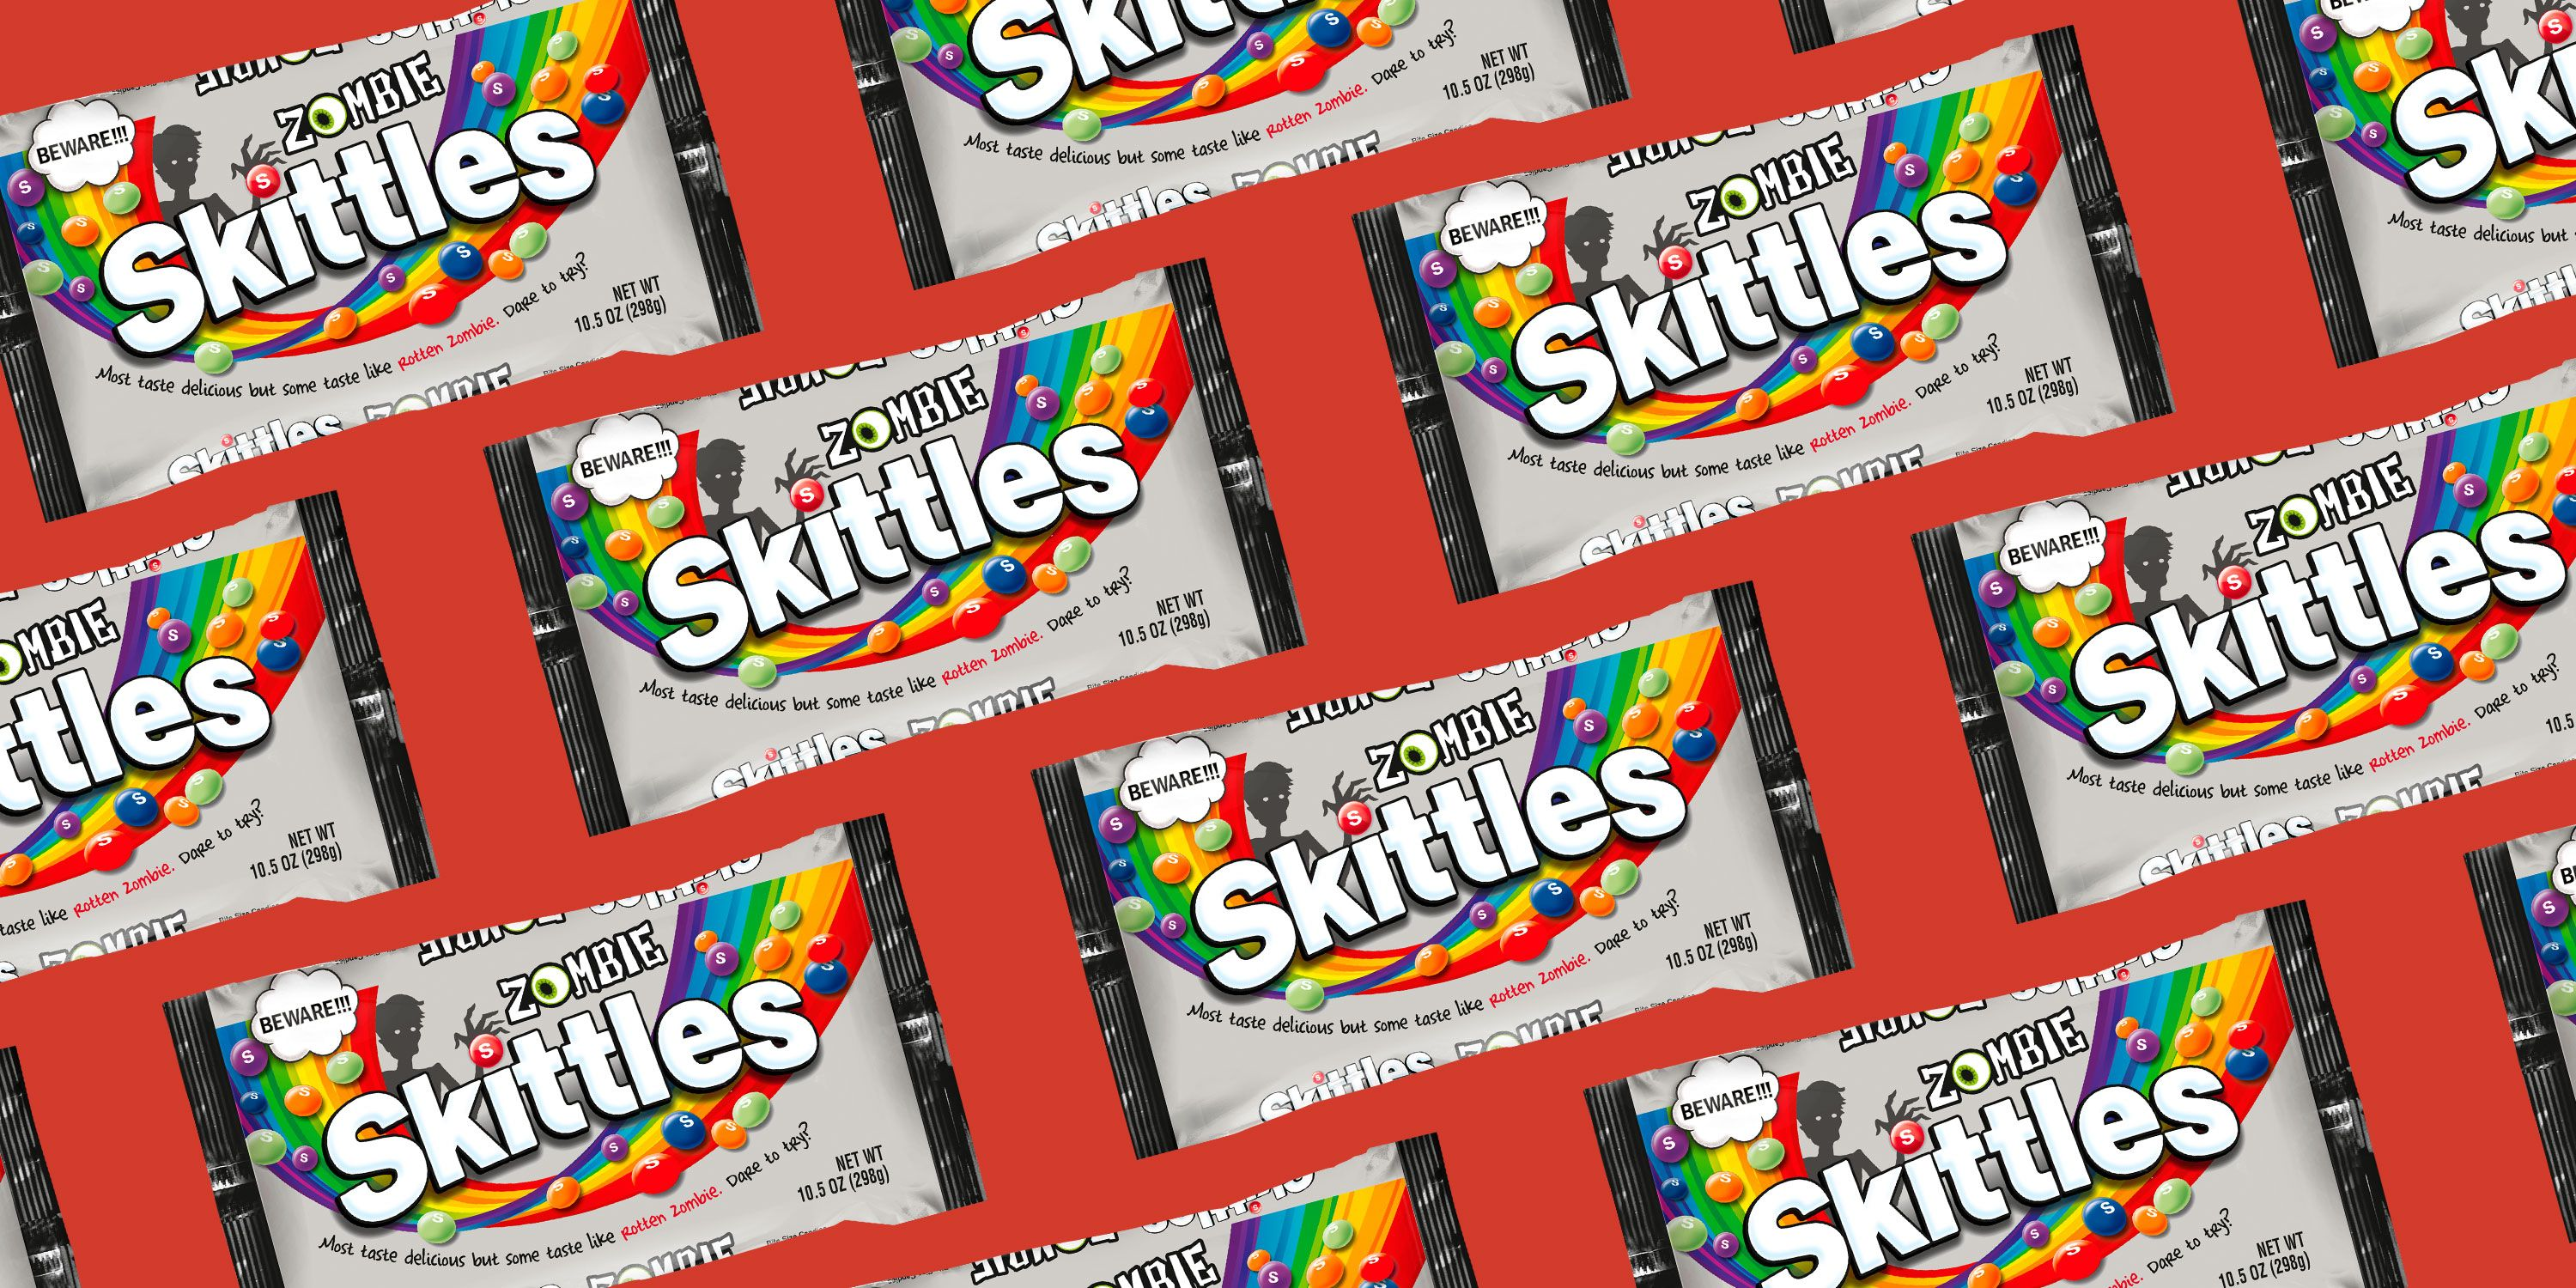 Zombie Skittles Are Coming New Skittles Flavors